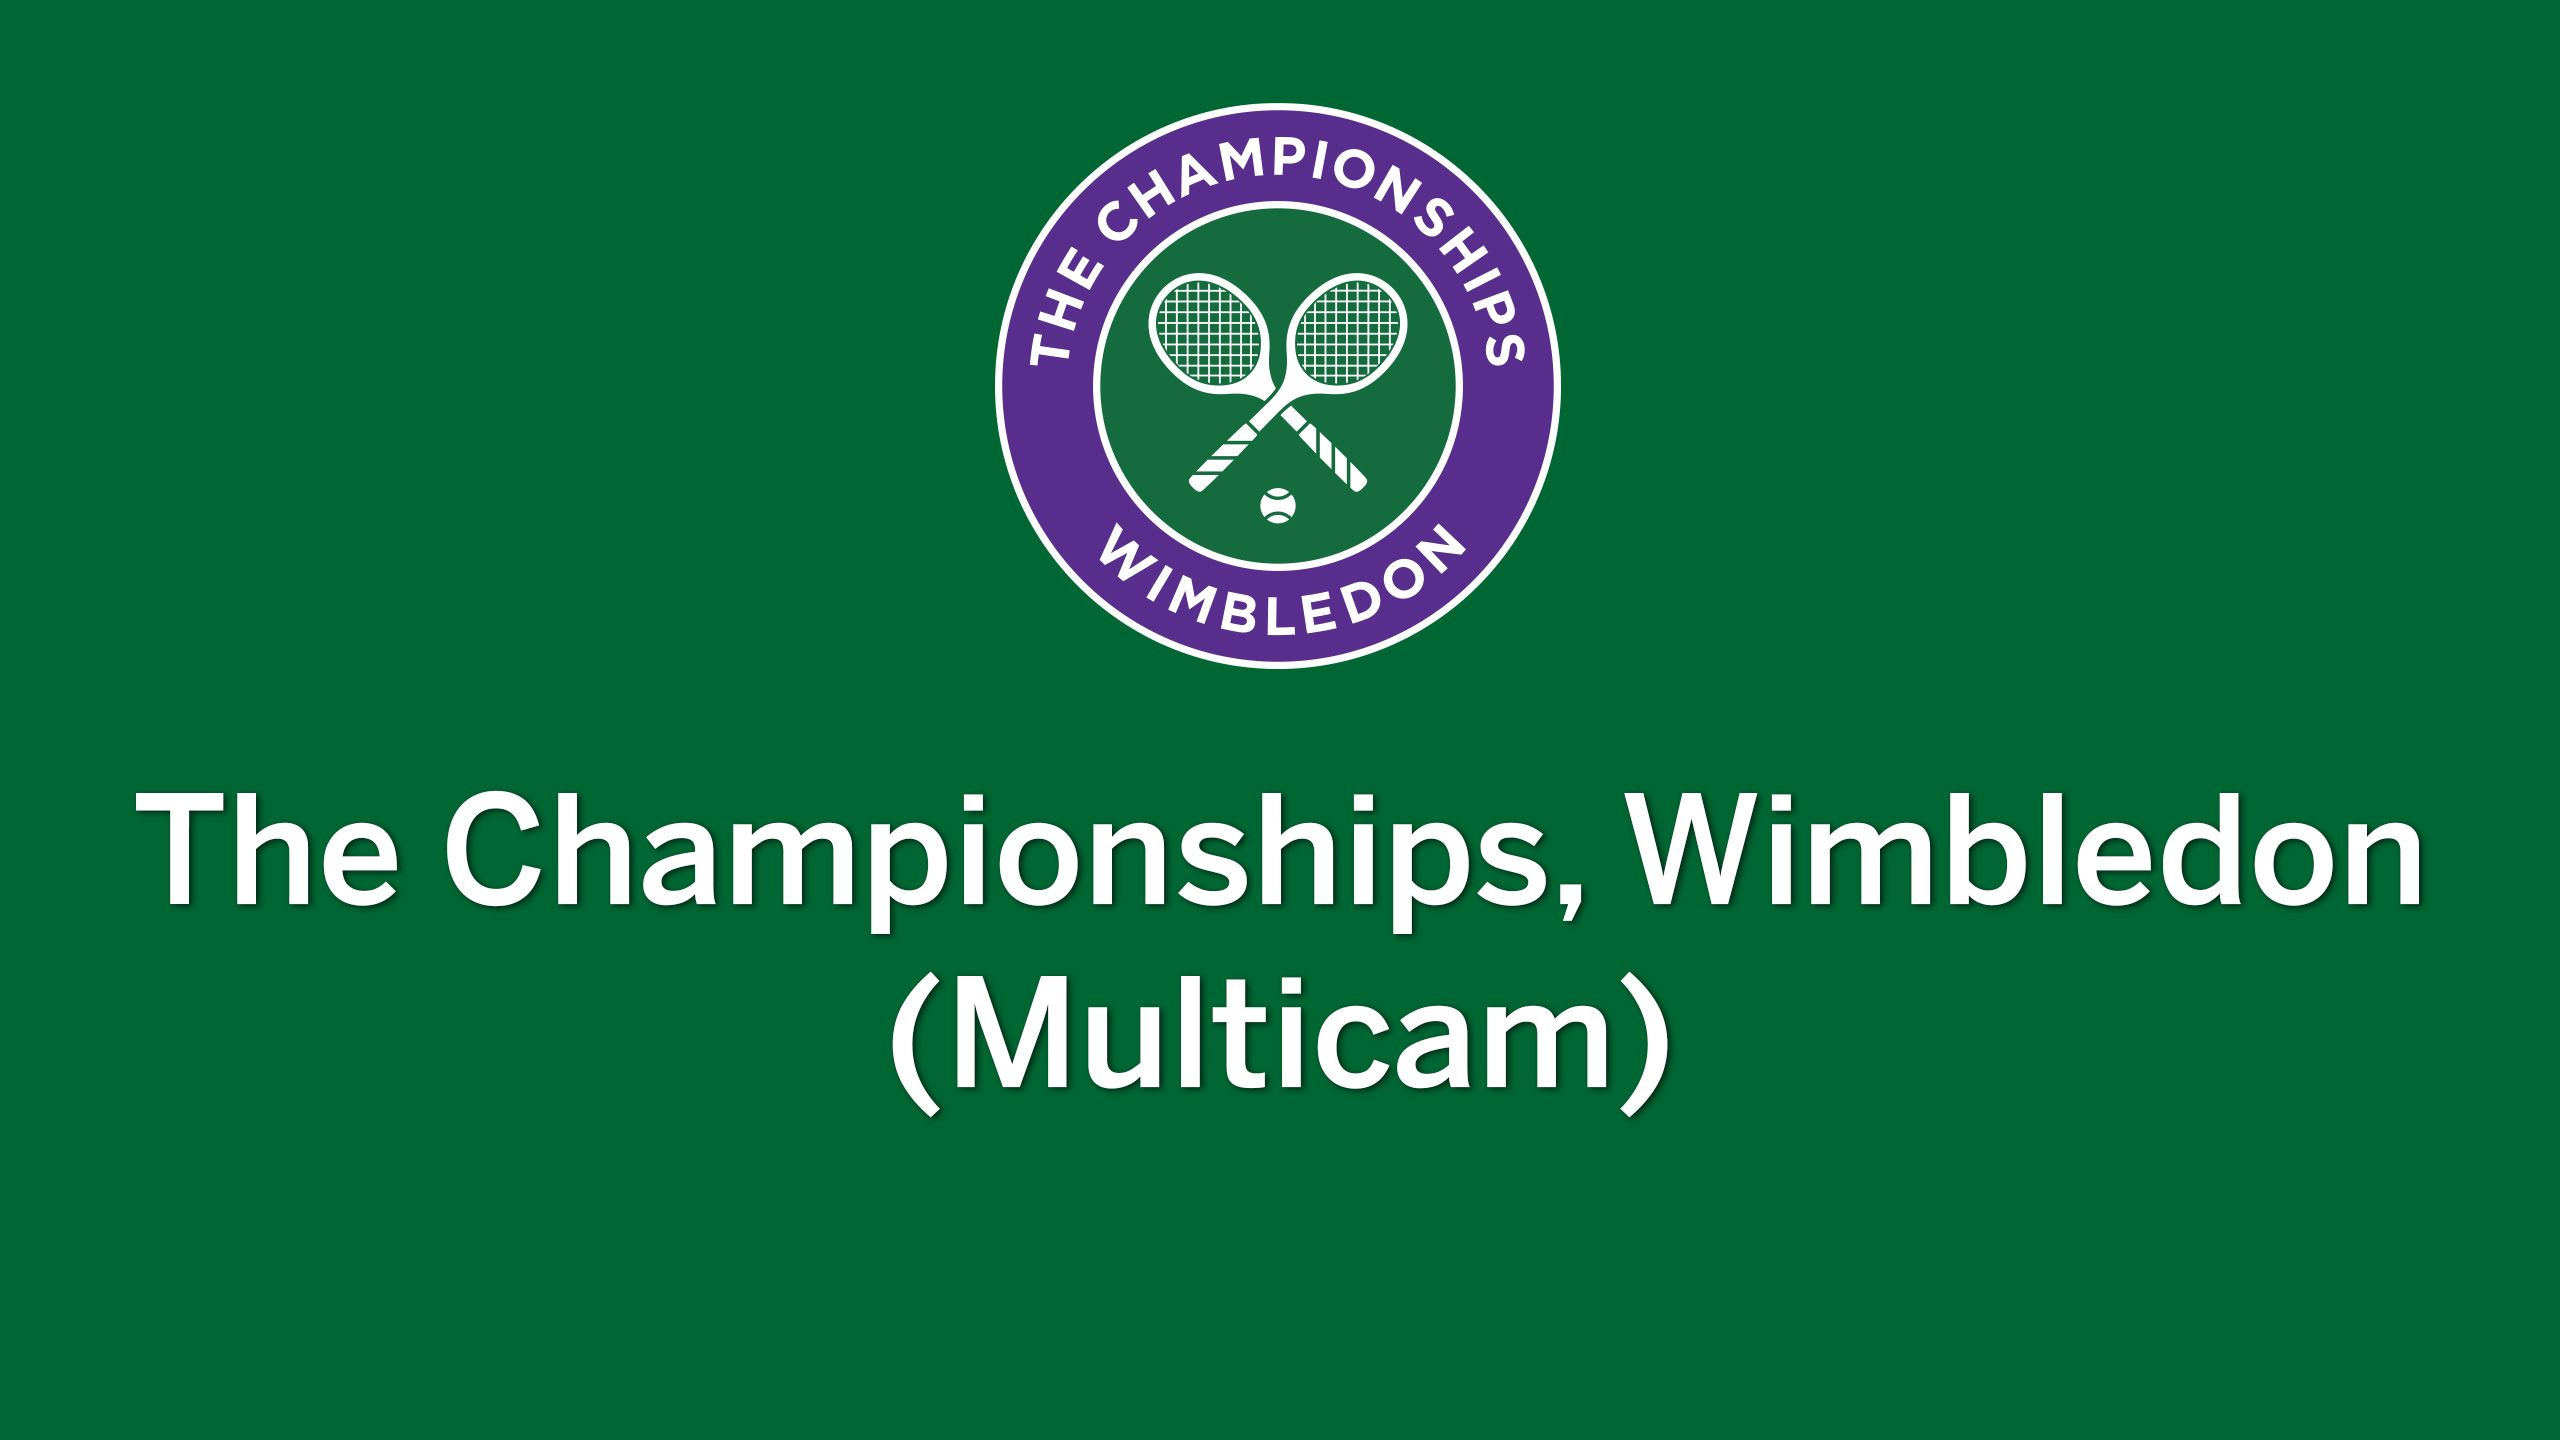 Wimbledon Multicam (Ladies' Semifinals)